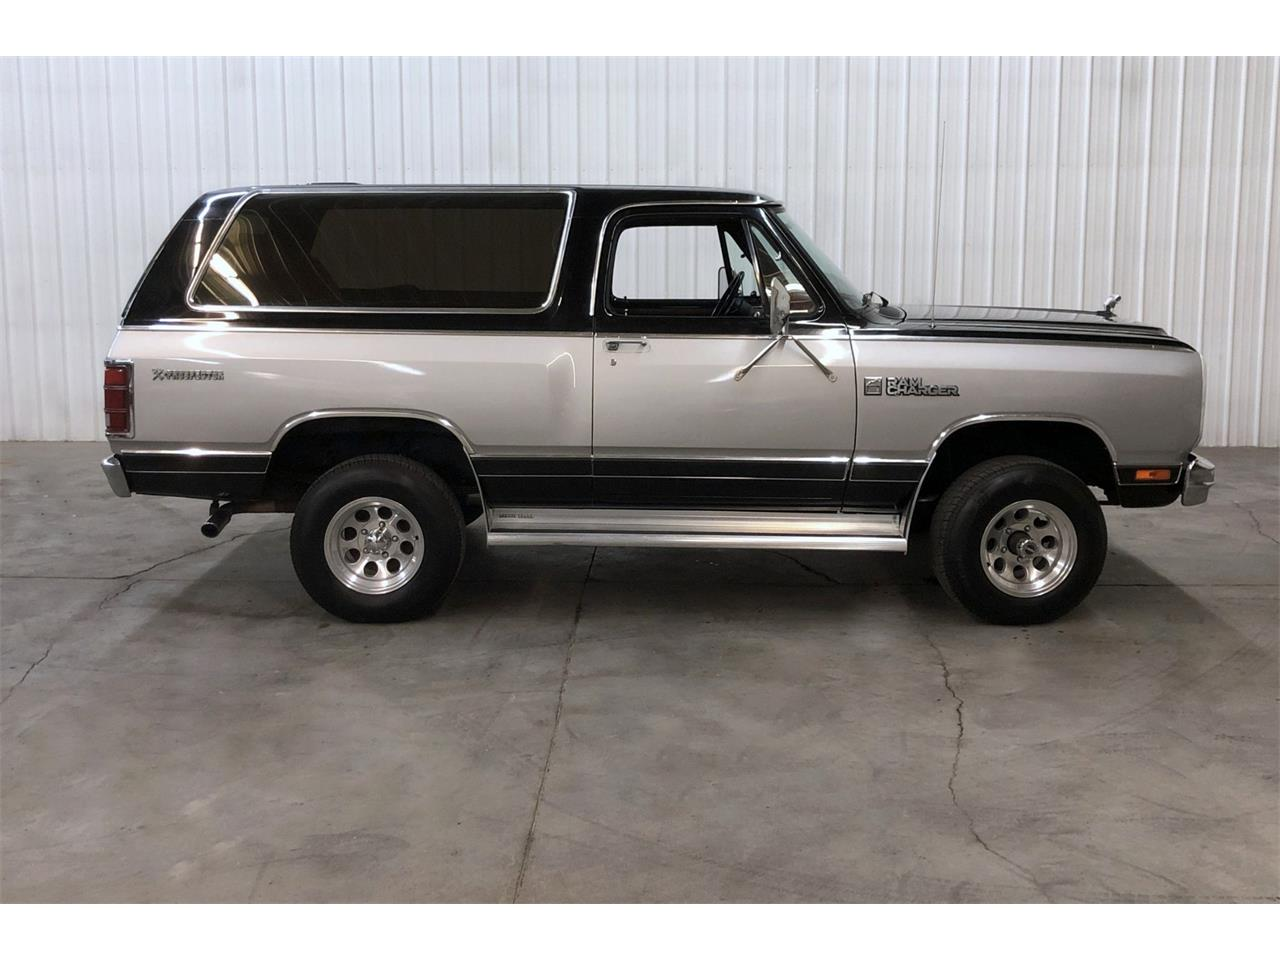 1984 Dodge Ramcharger (CC-1296480) for sale in Maple Lake, Minnesota